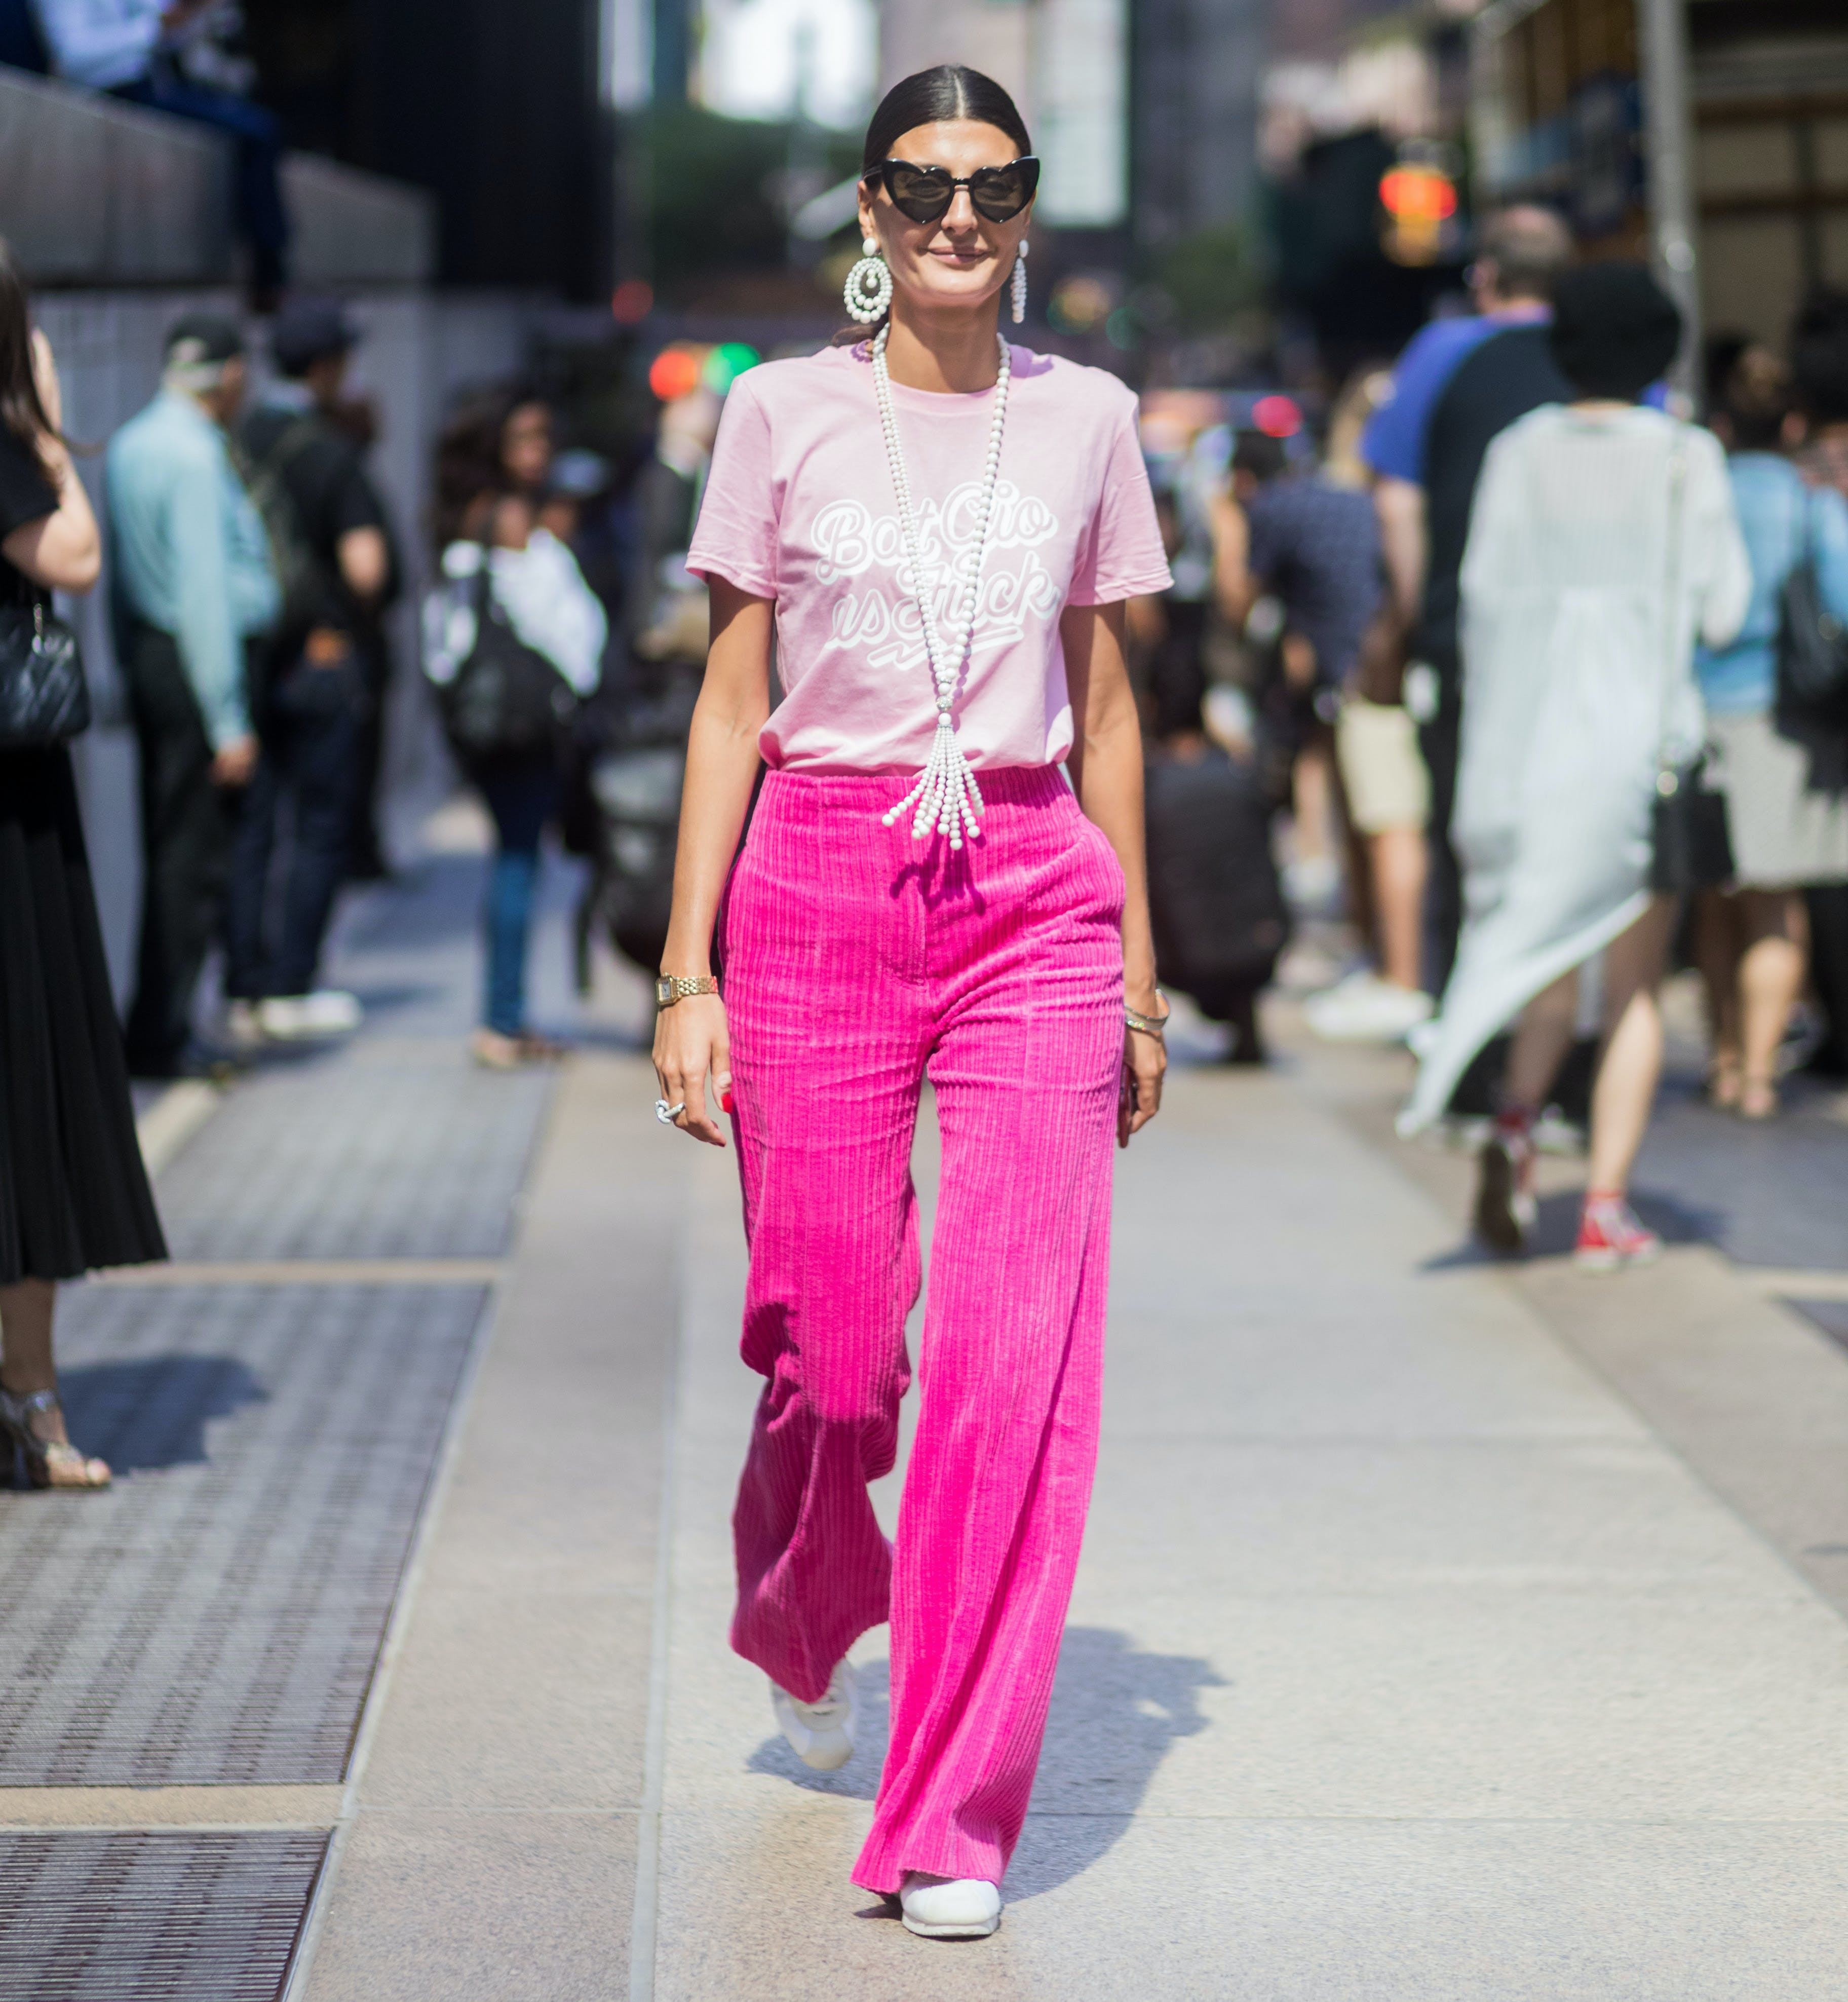 giovanna battagglia wearing all pink everything